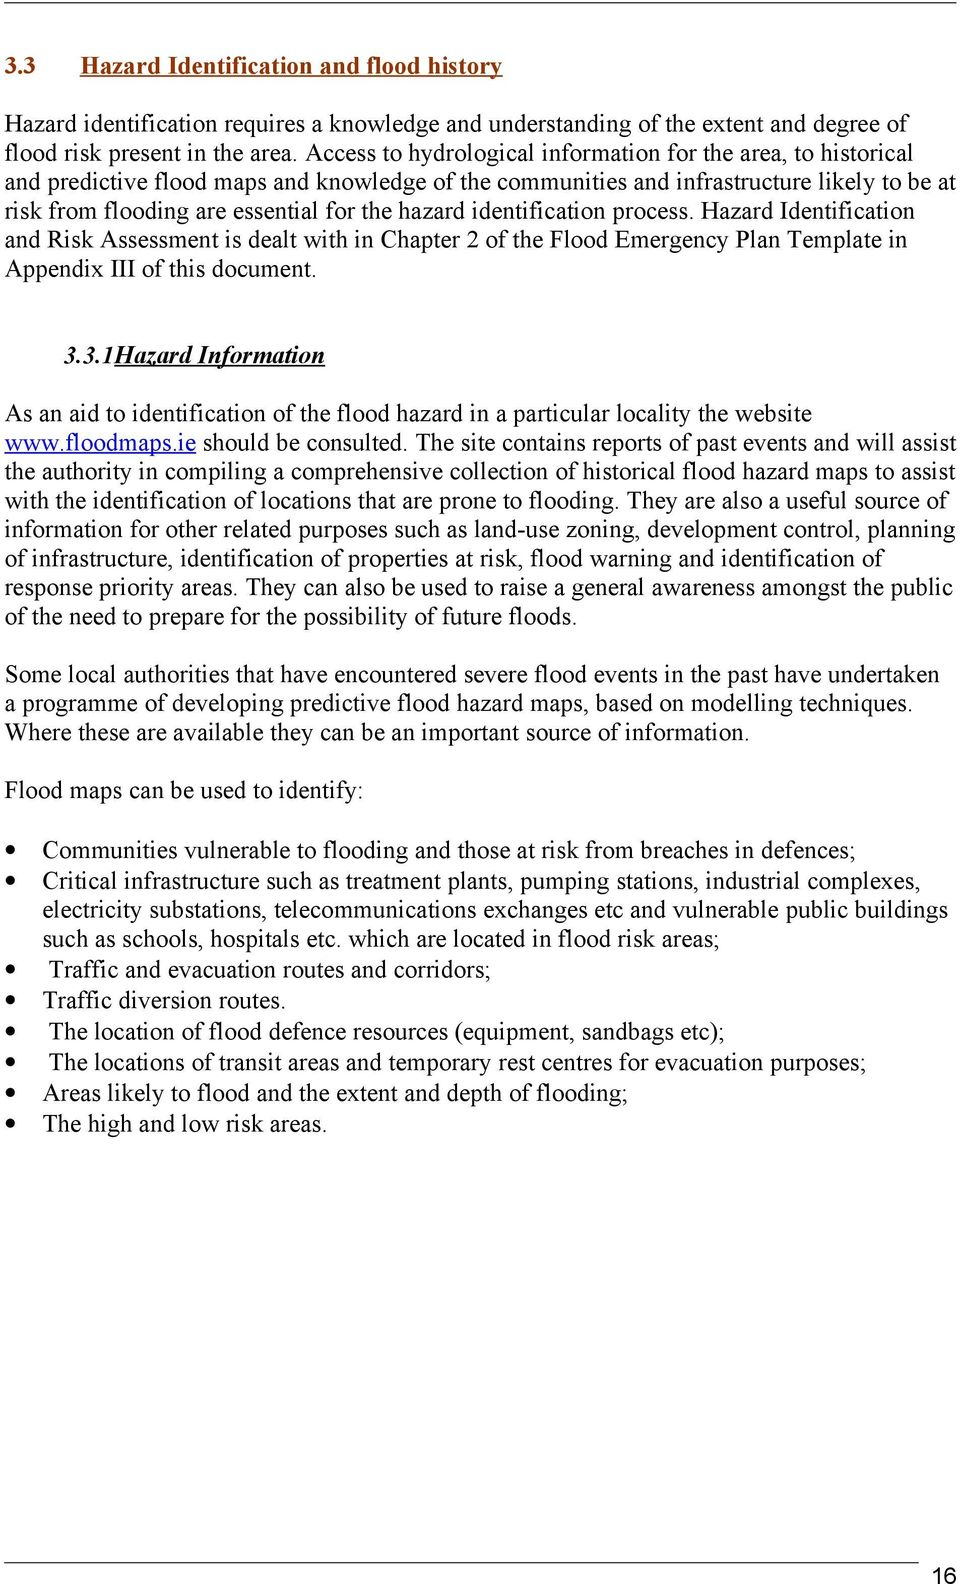 hazard identification process. Hazard Identification and Risk Assessment is dealt with in Chapter 2 of the Flood Emergency Plan Template in Appendix III of this document. 3.